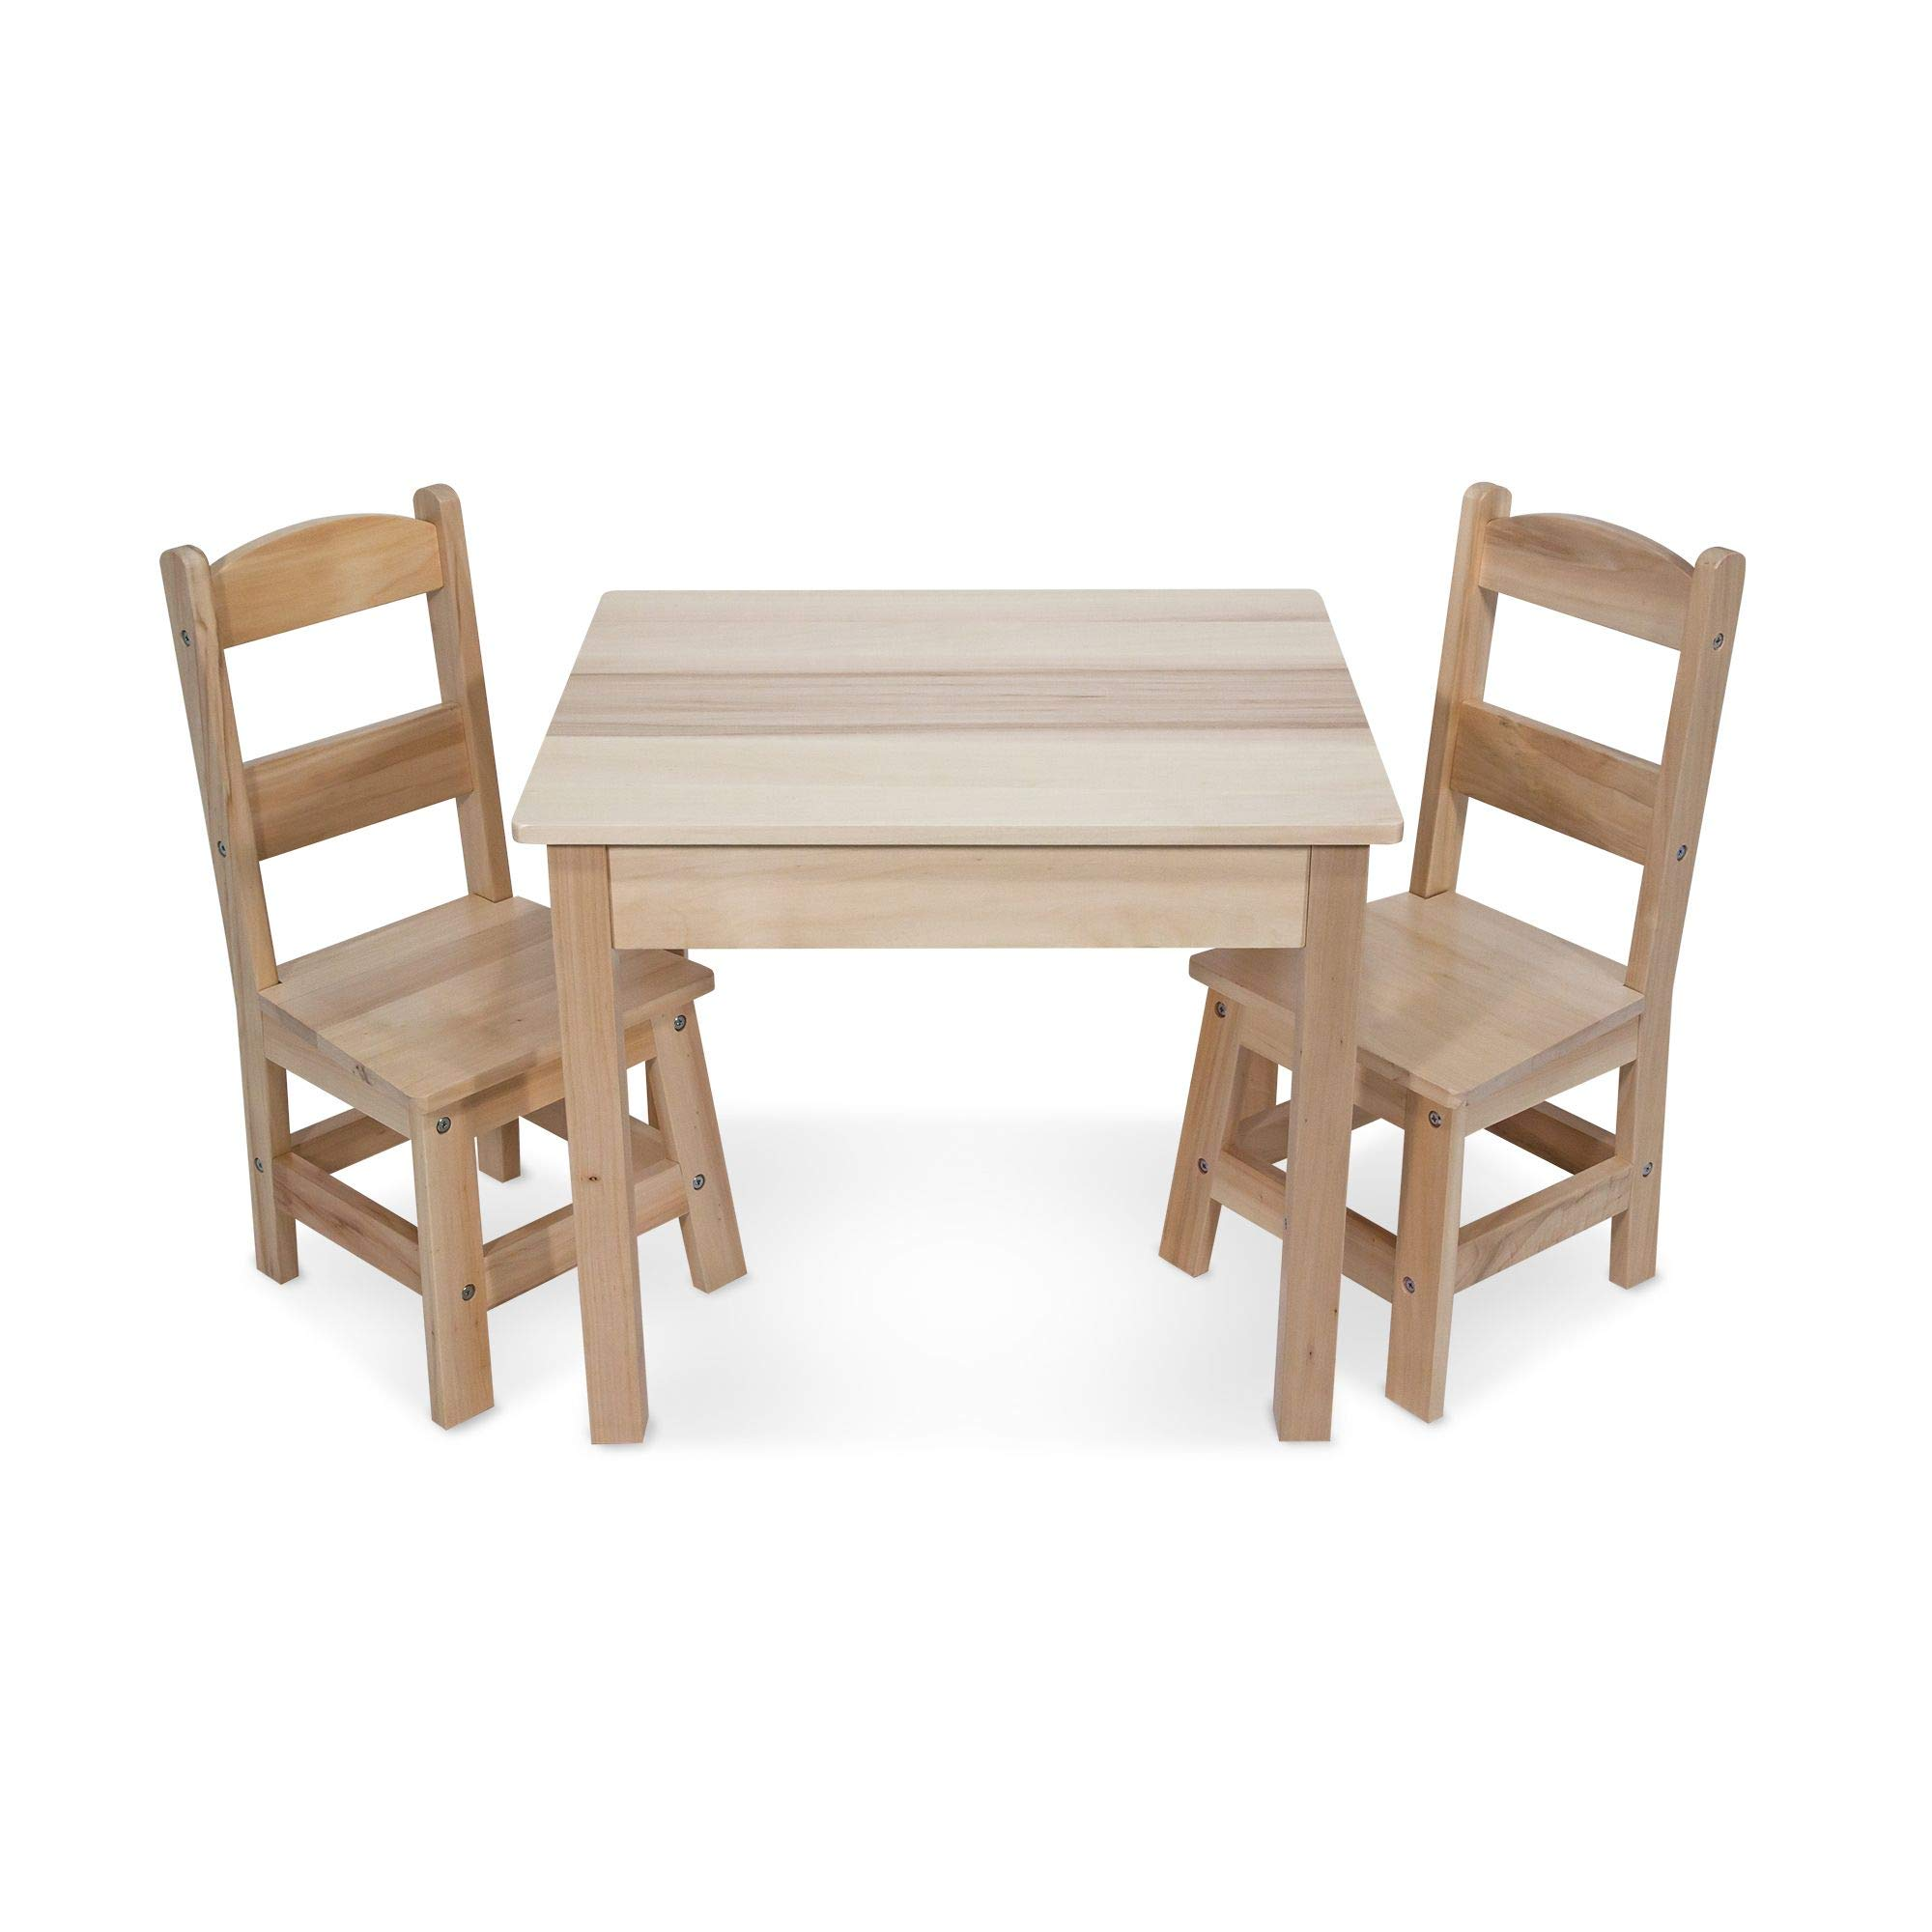 Melissa Doug Solid Wood Table Chairs Kids Furniture Sturdy Wooden